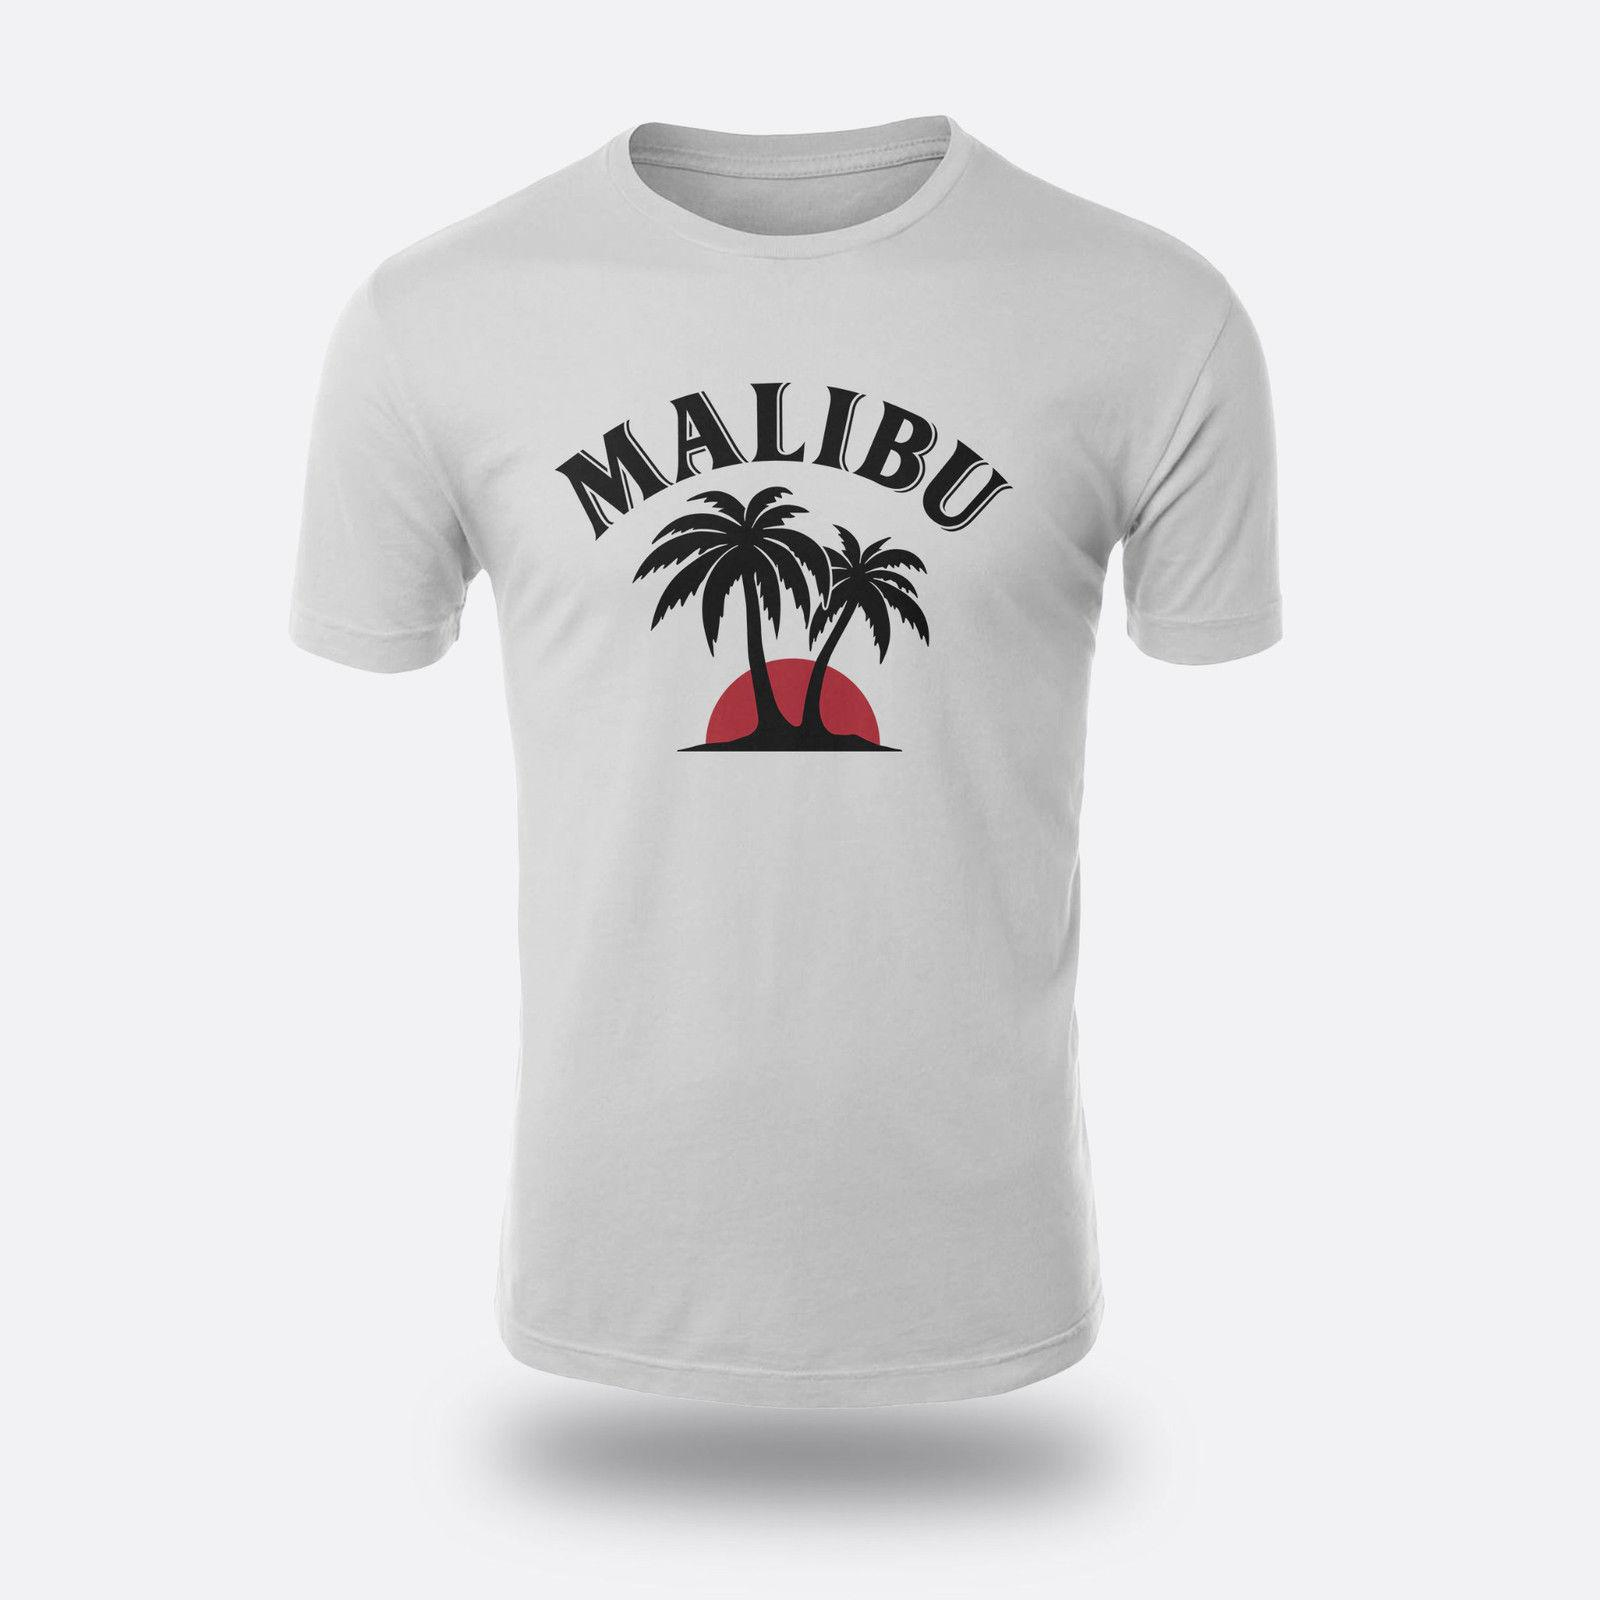 7481e6a7112d54 Malibu Rum Beach City Tequila Men S T Shirt S To 3XL Color White Casual Male  Tshirt Men Tops Tees Tees 100% Cotton Casual And T Shirt T Shirt Makes From  ...